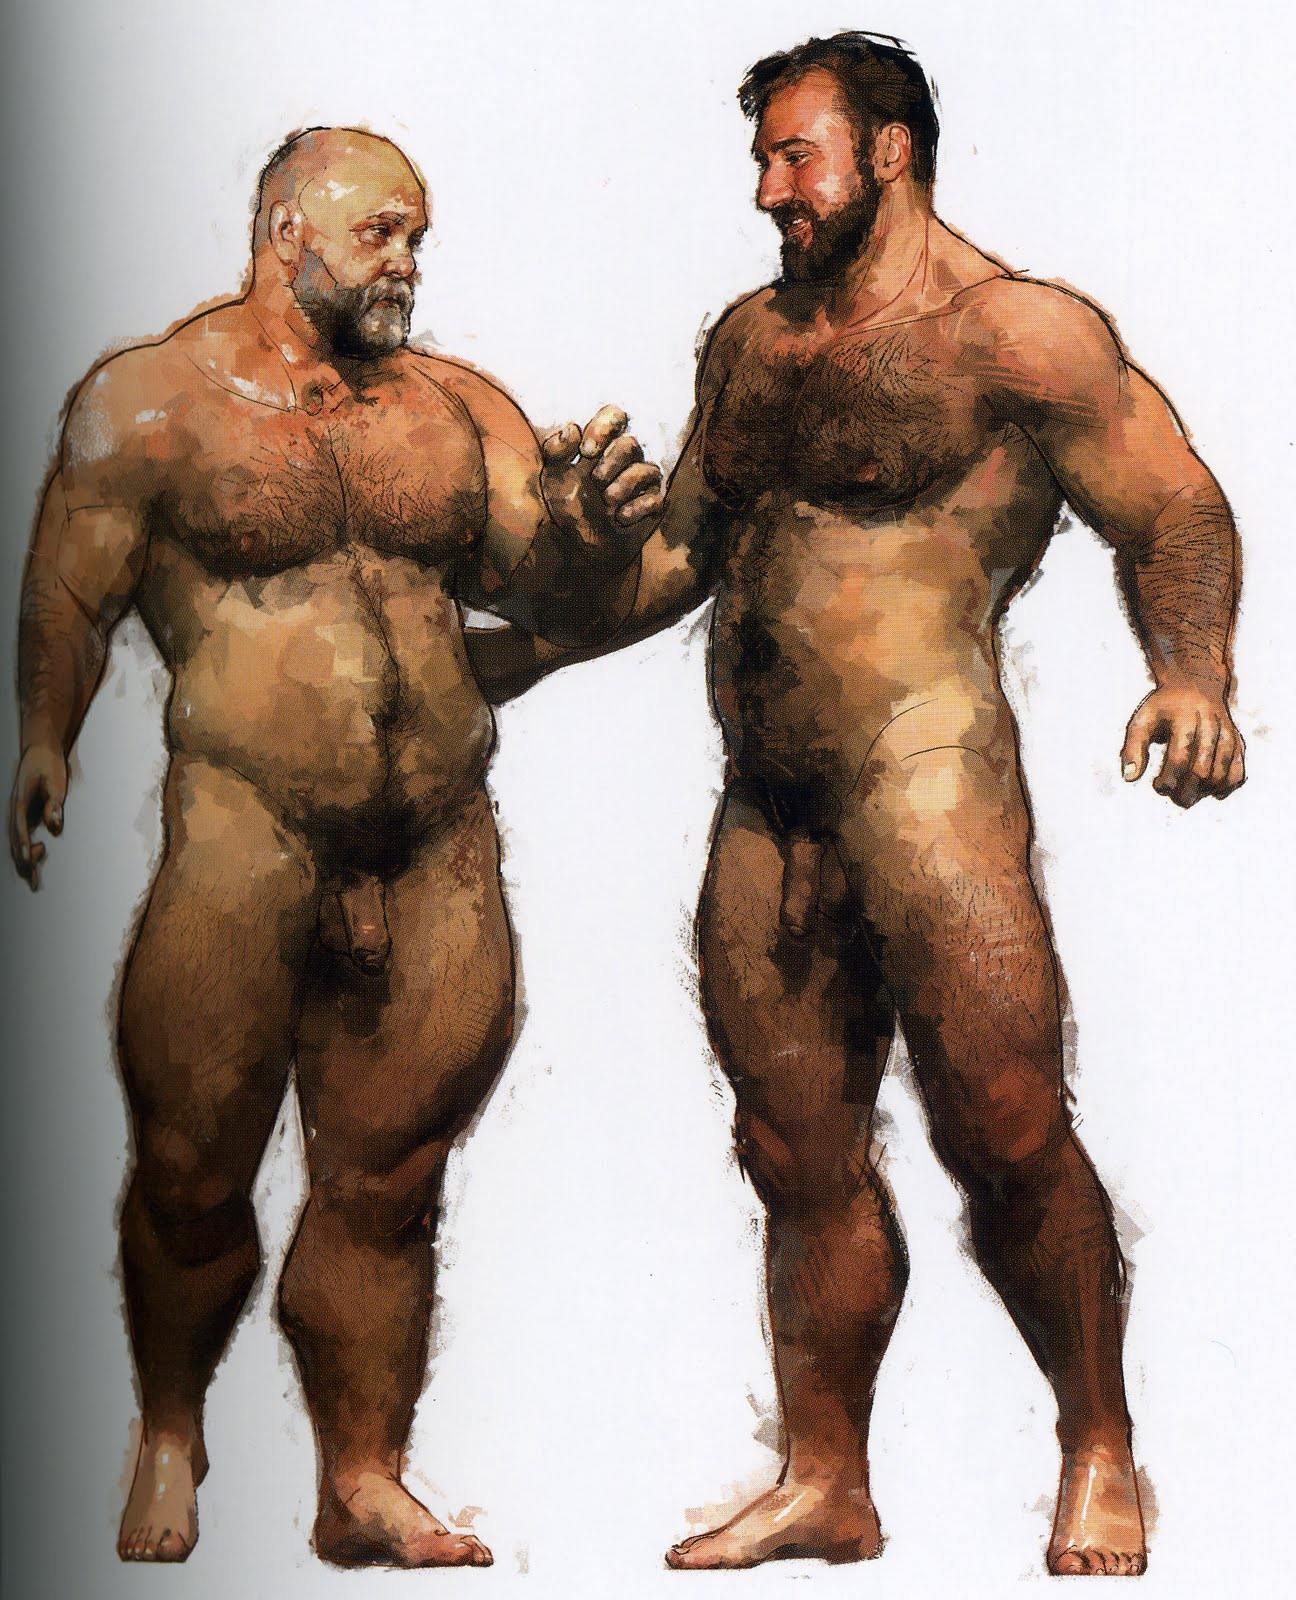 BIG LOVE SEXY BEARS IN GAY ART COMIC